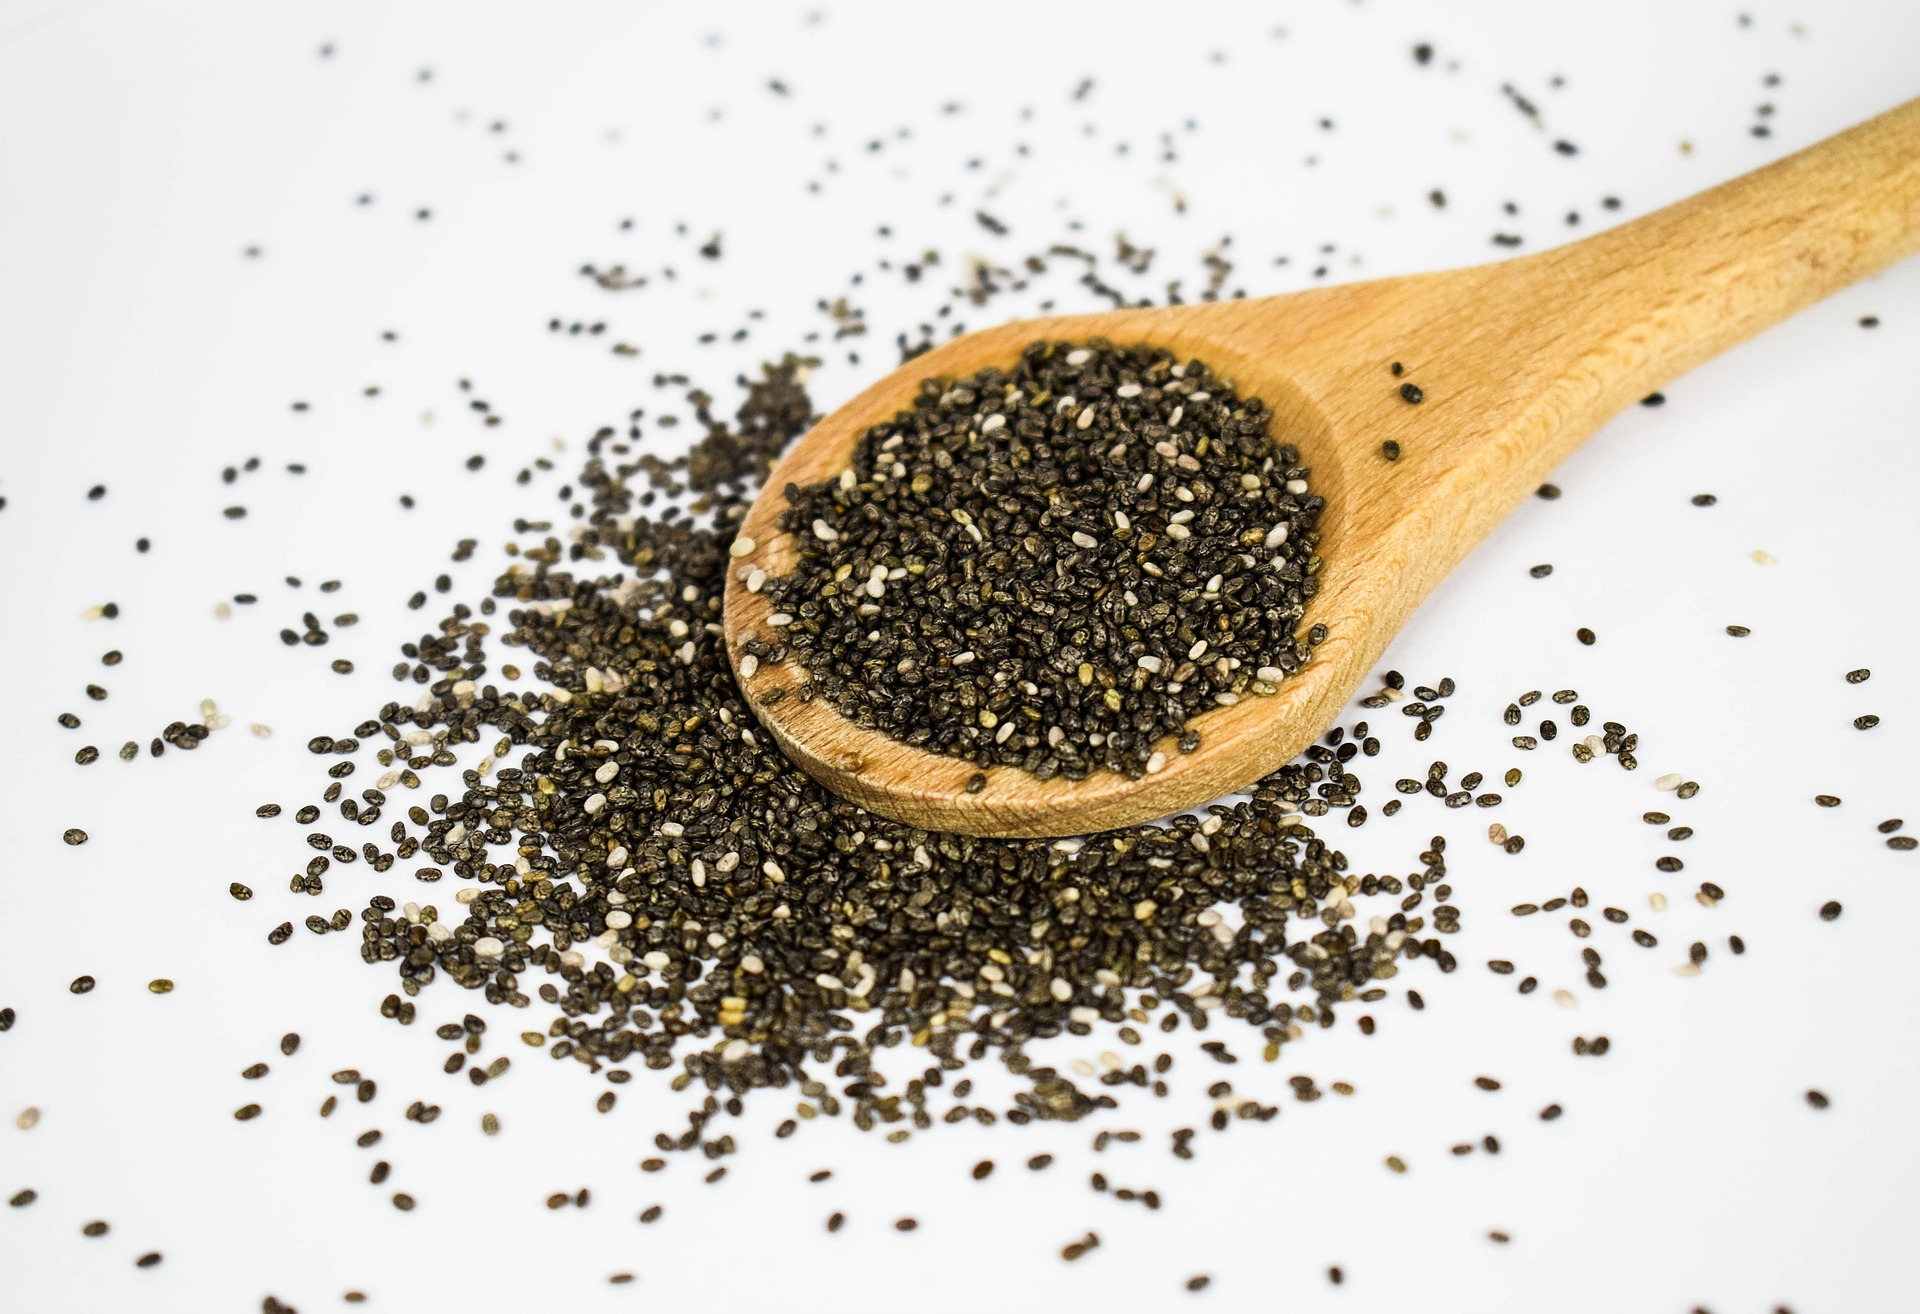 What Are The Amazing Health Benefits Of Chia Seeds?